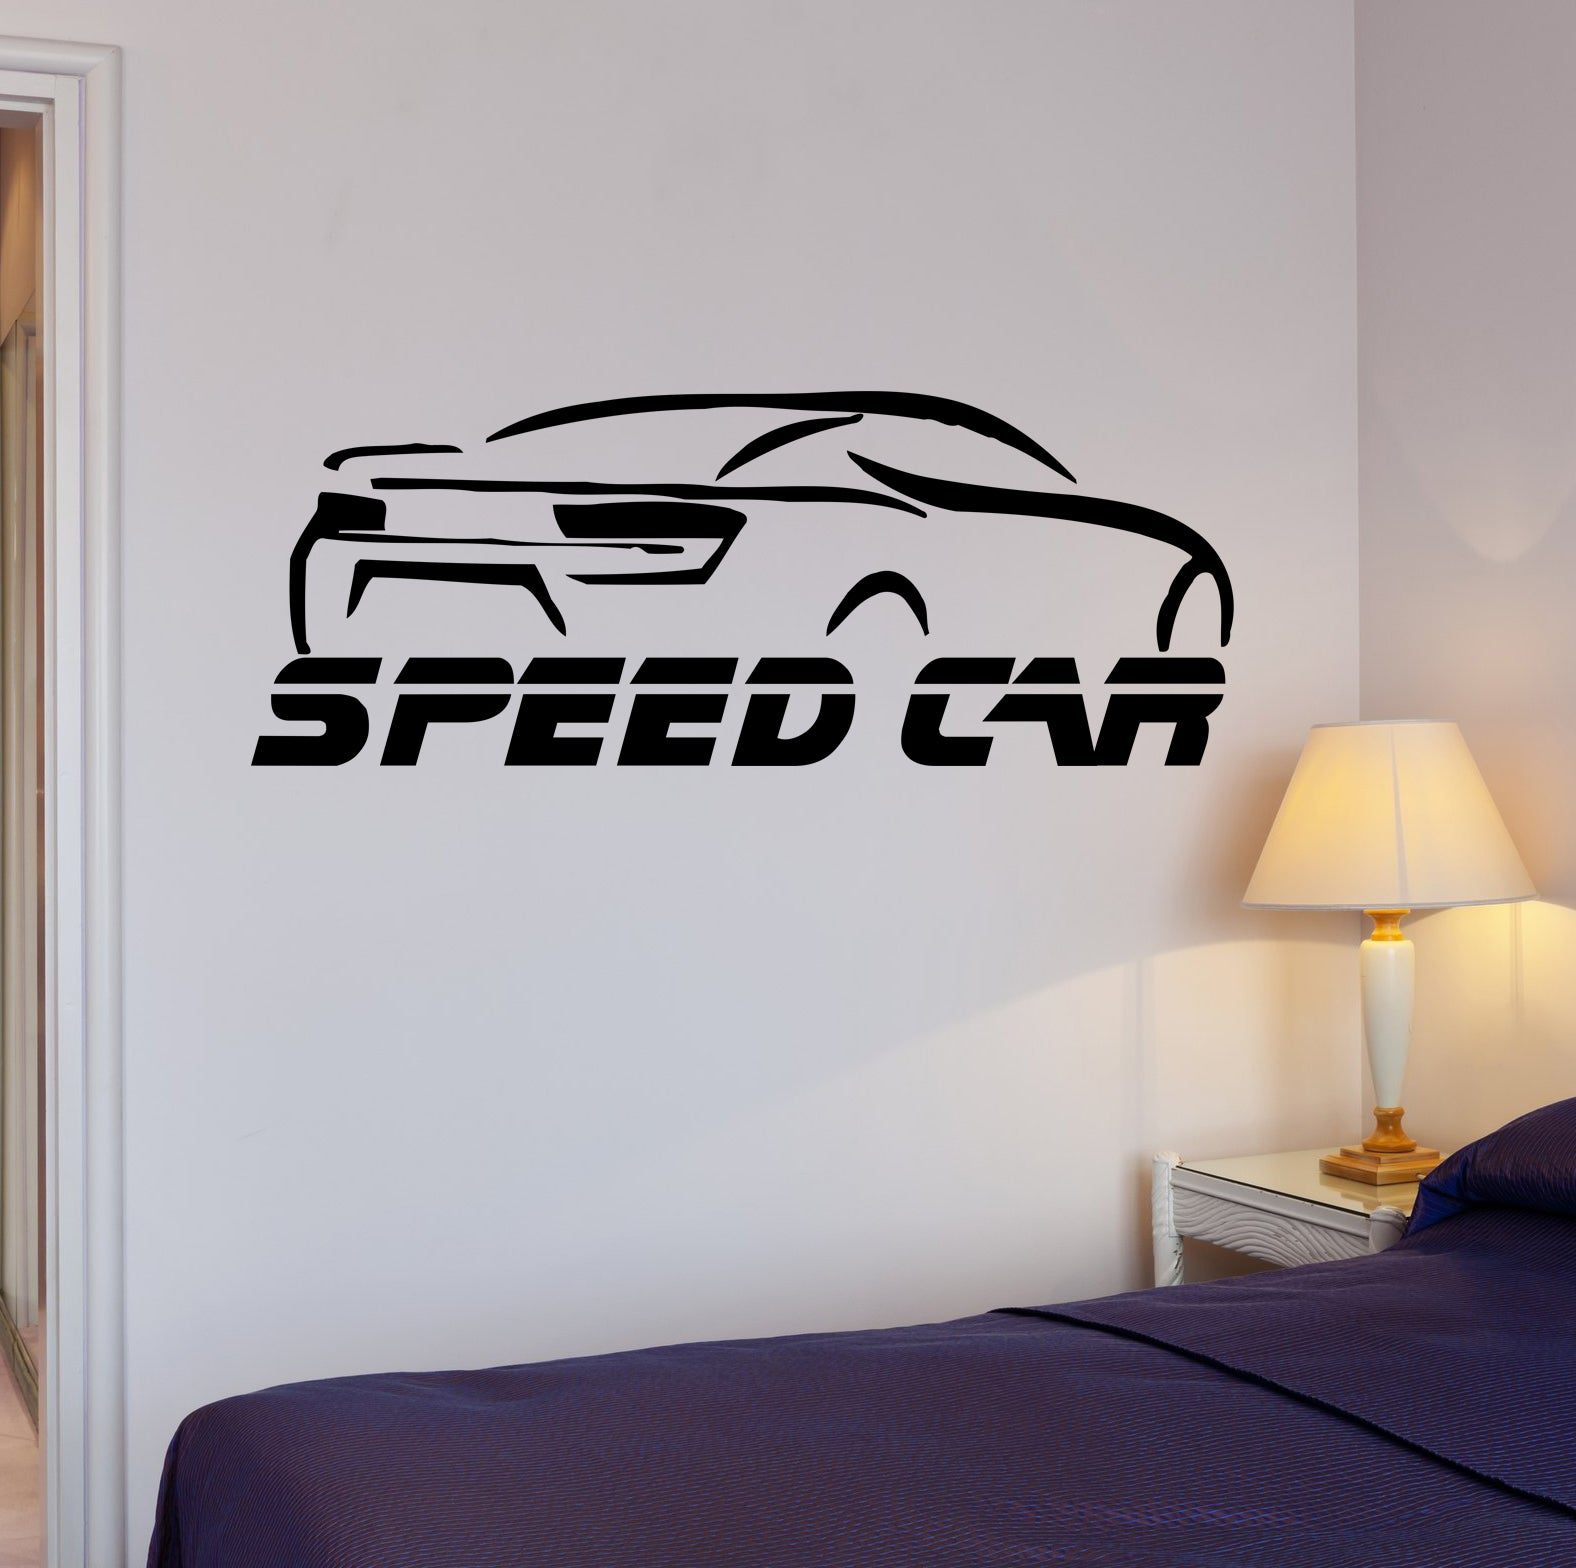 Wall Decal Speed Car Race Garage Auto Word Vinyl Sticker (ed1507)